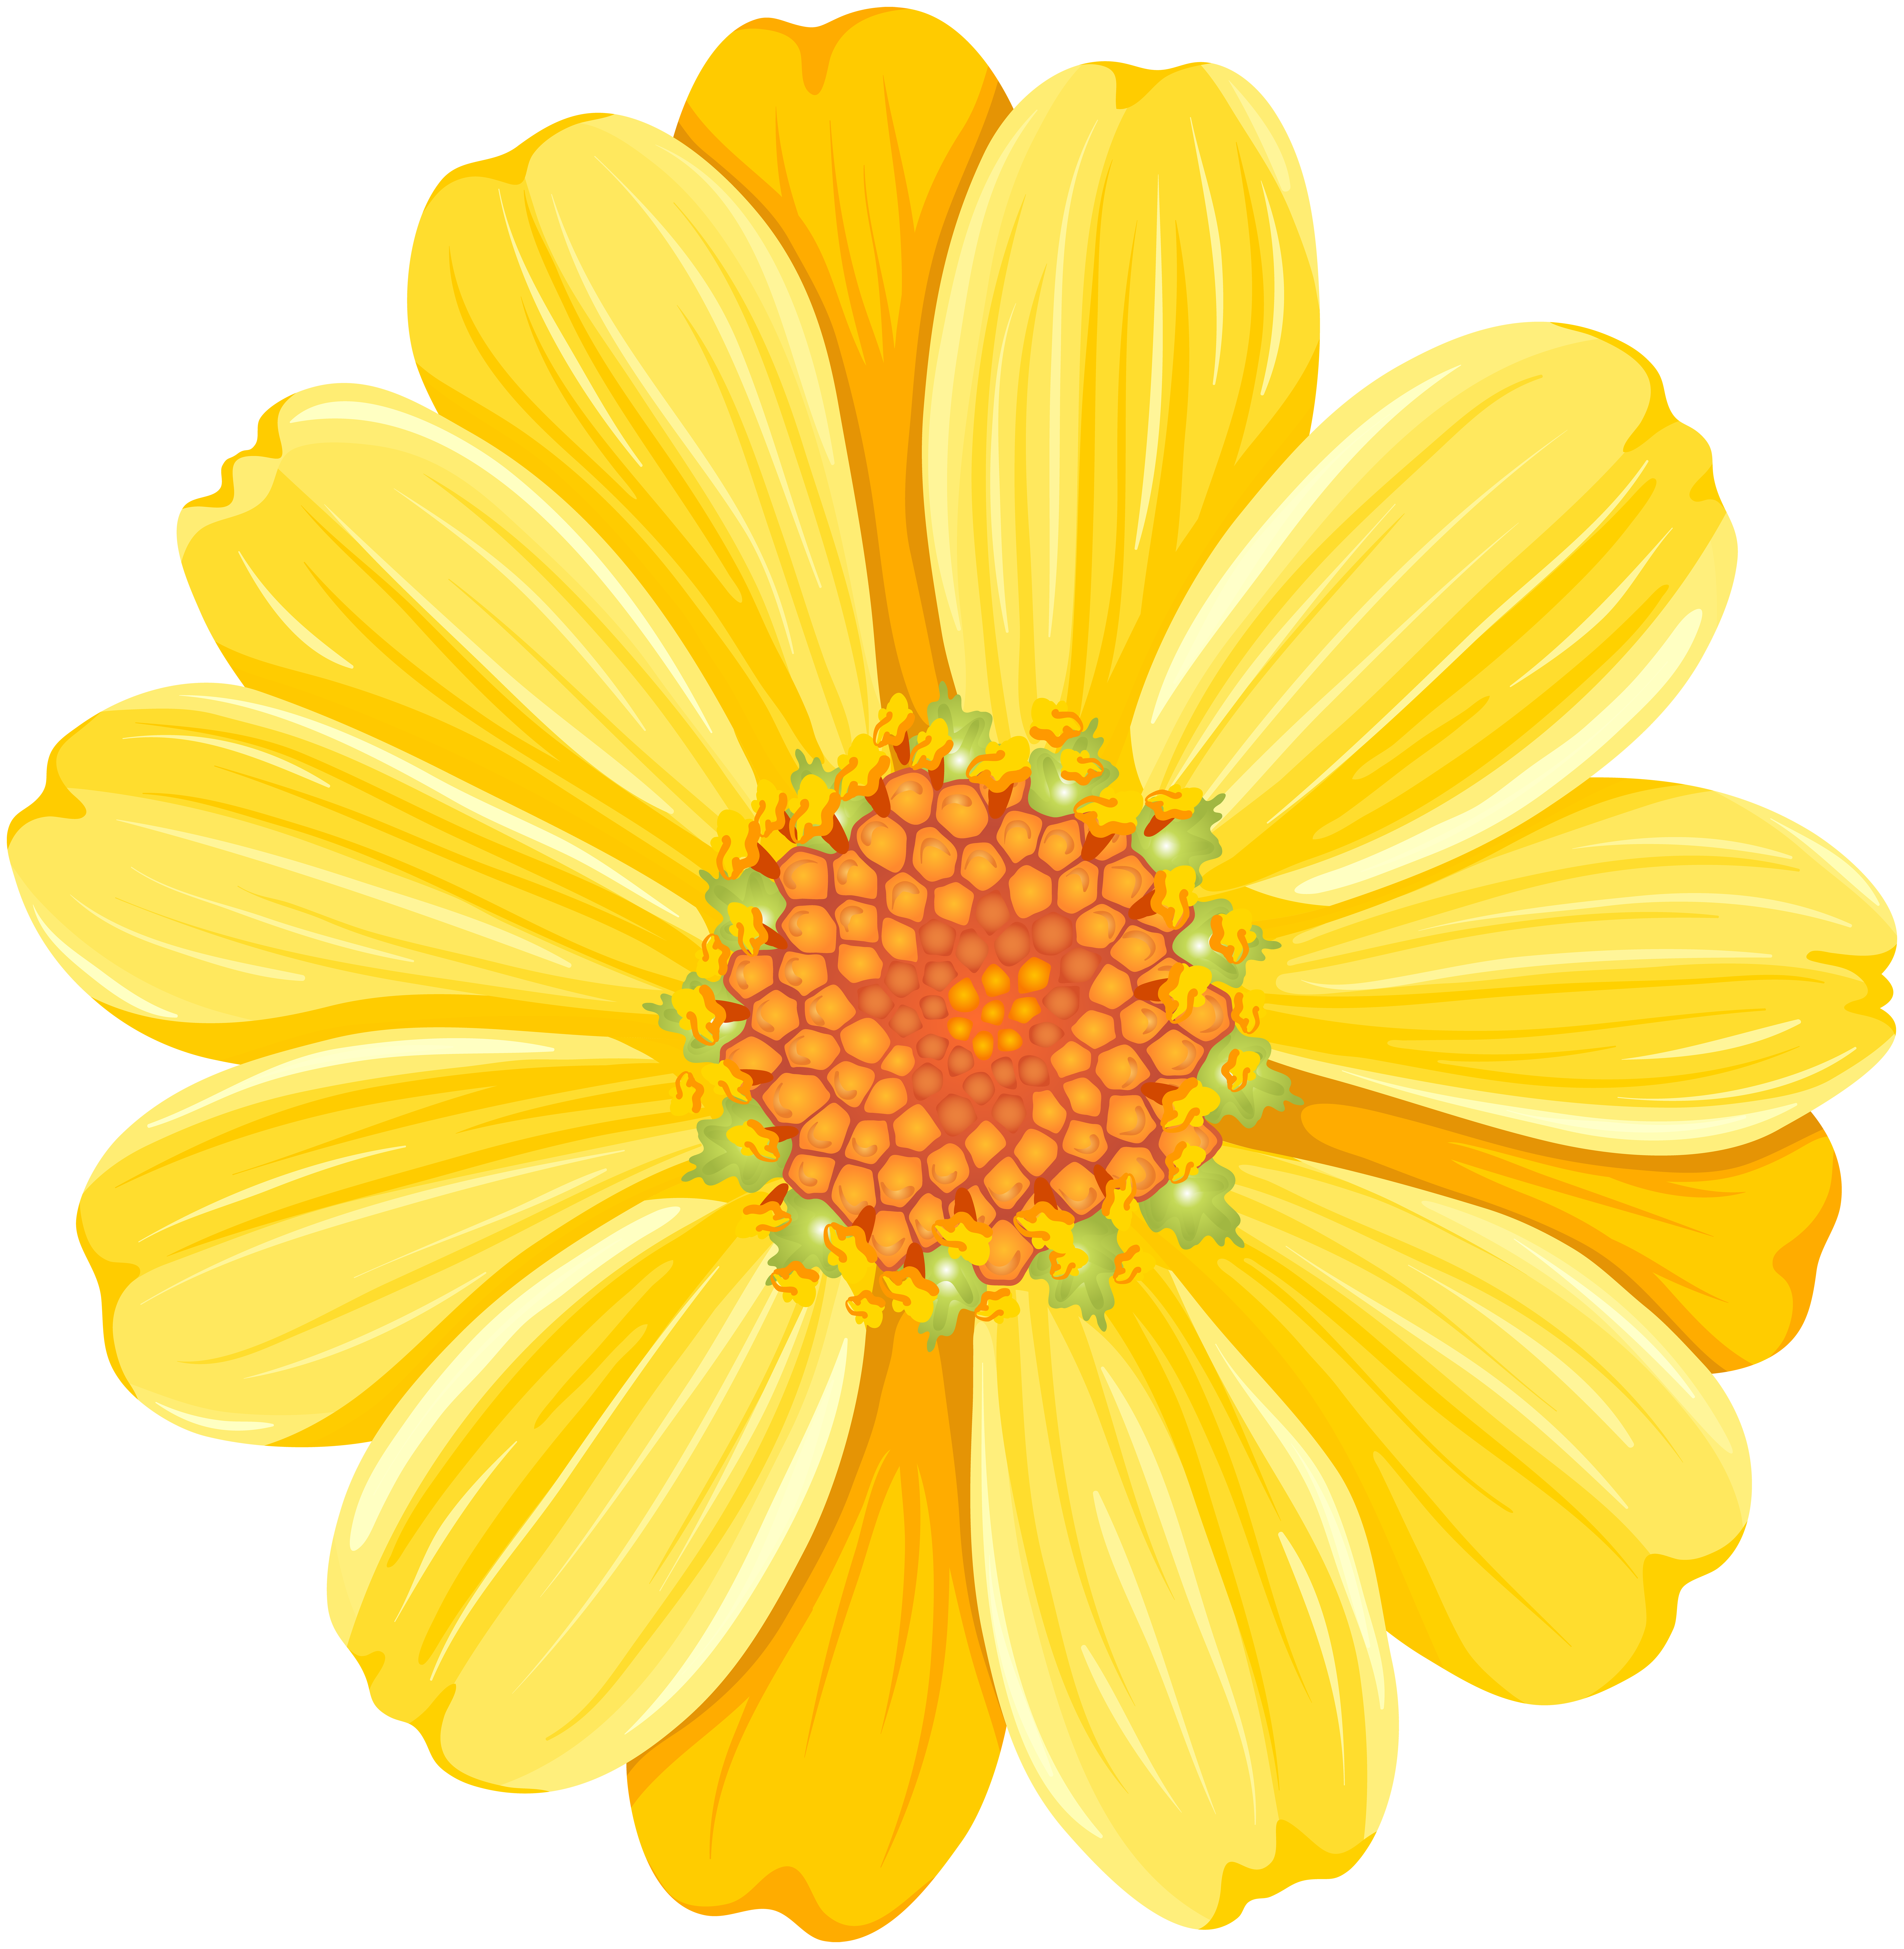 Daisy family clipart 20 free Cliparts | Download images on ...